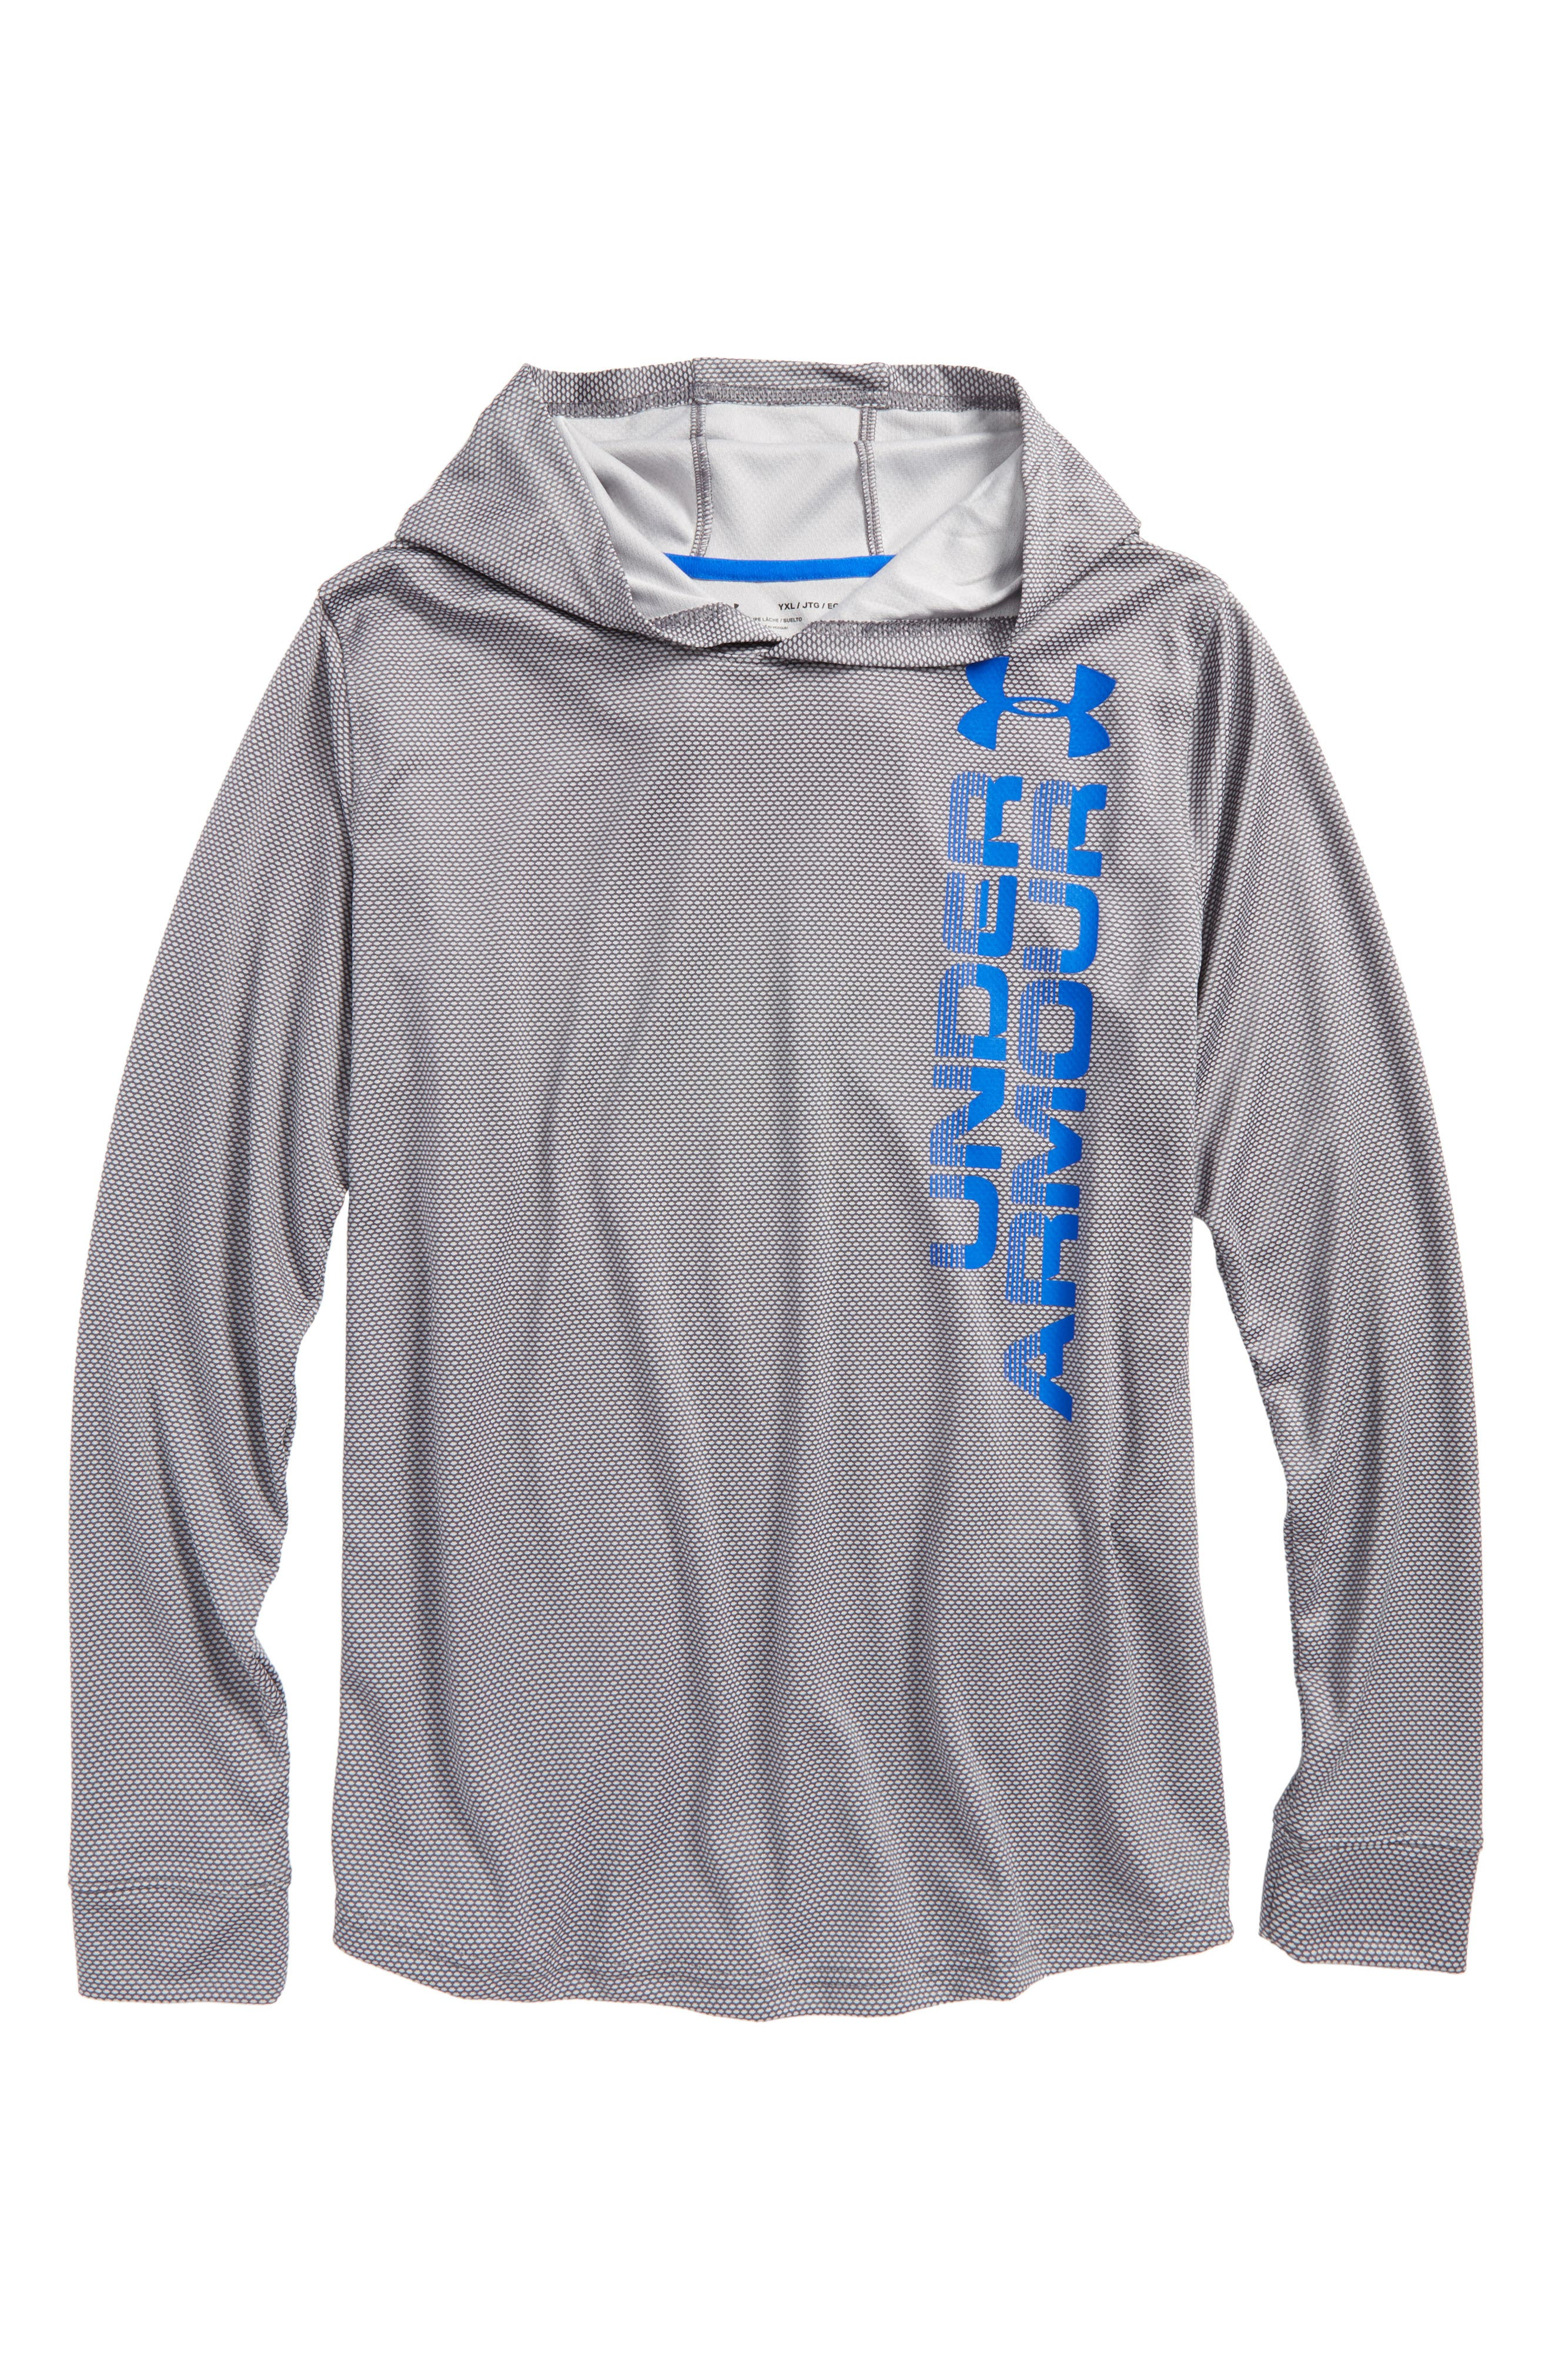 Textured Tech Hoodie,                         Main,                         color, Graphite/ Ultra Blue